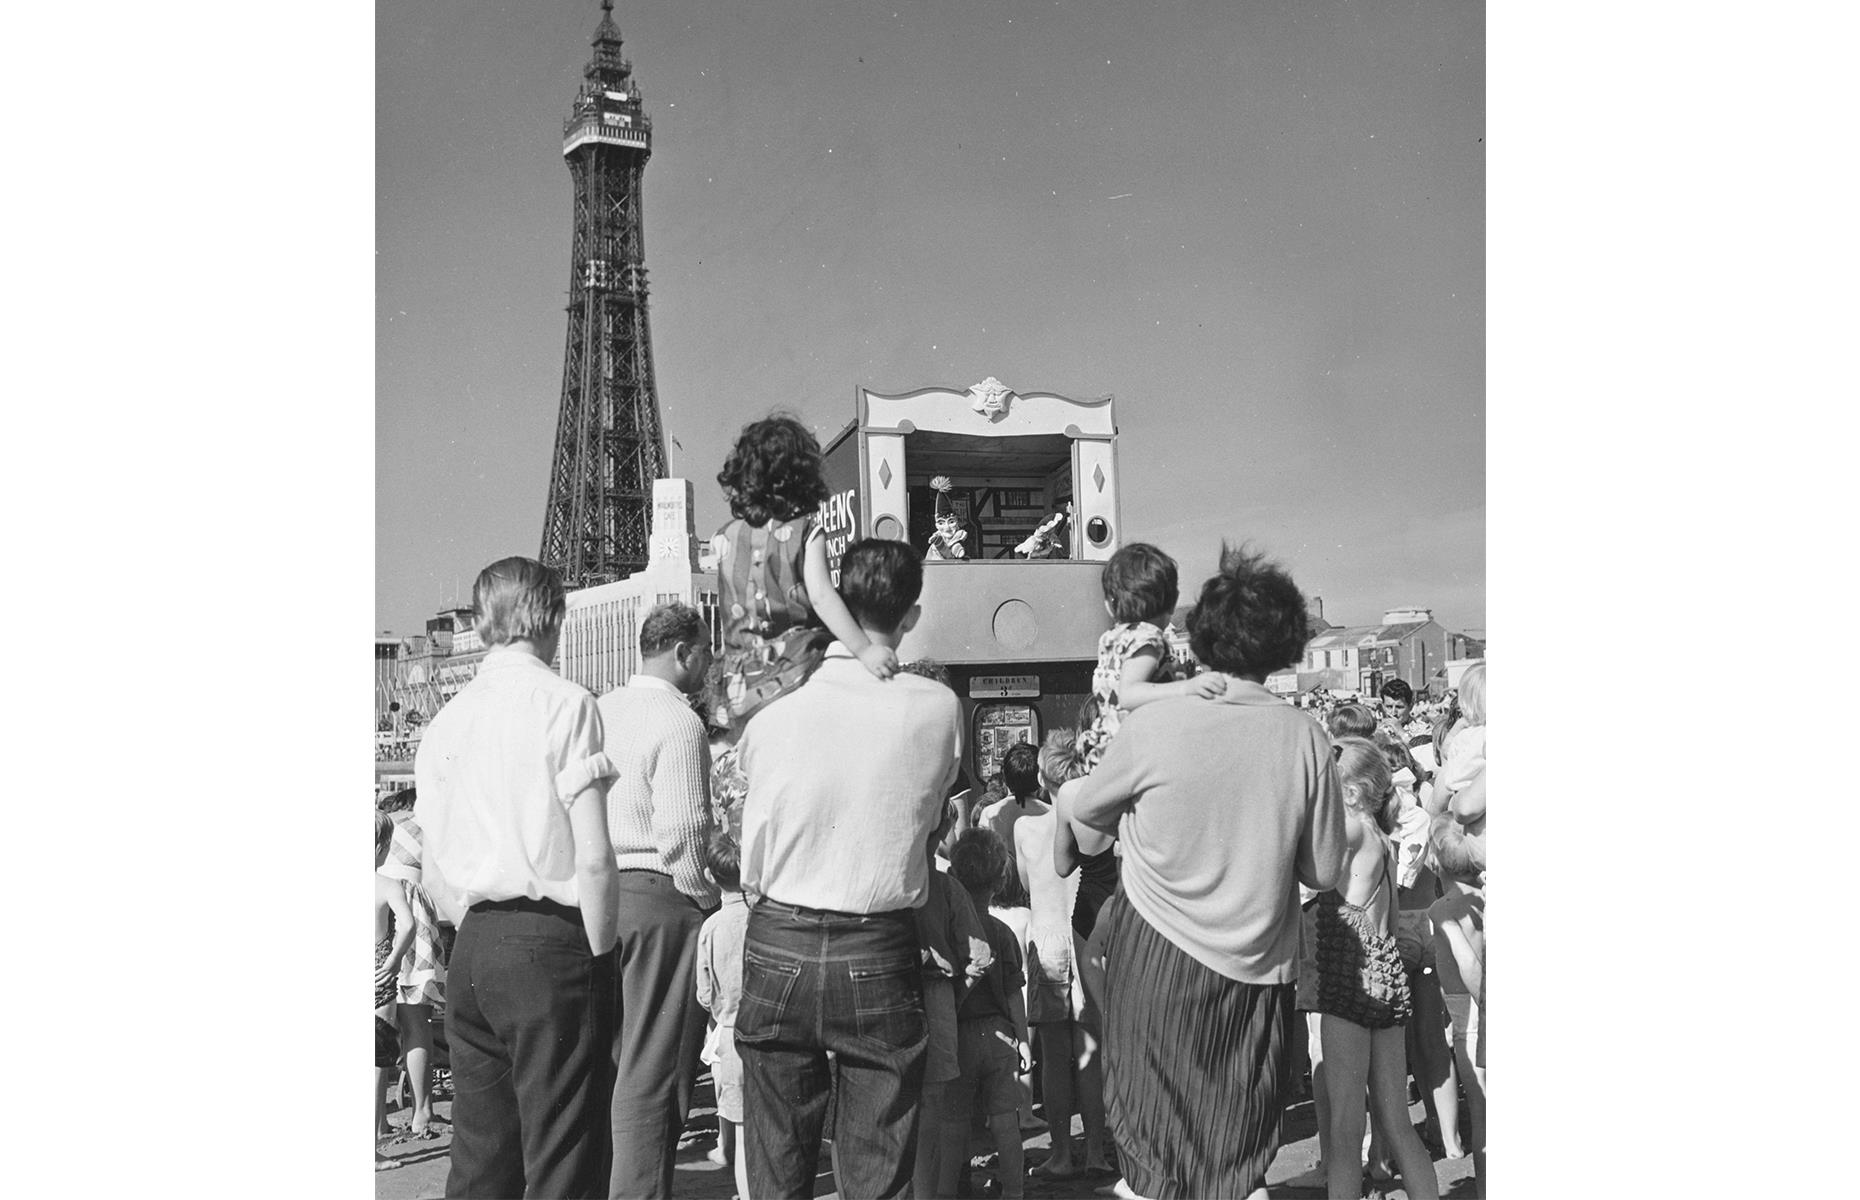 Slide 20 of 38: The northwest of England laid claim to one of Britain's most popular holiday spots in the 1960s. In summer, Blackpool Beach, with its piers and promenade, would play host to throngs of holidaymakers, who rode donkeys, ate ice cream and lazed on the sands. It's still a popular spot today, and in this heartwarming 1960s shot Blackpool Tower is the backdrop for a family puppet show.